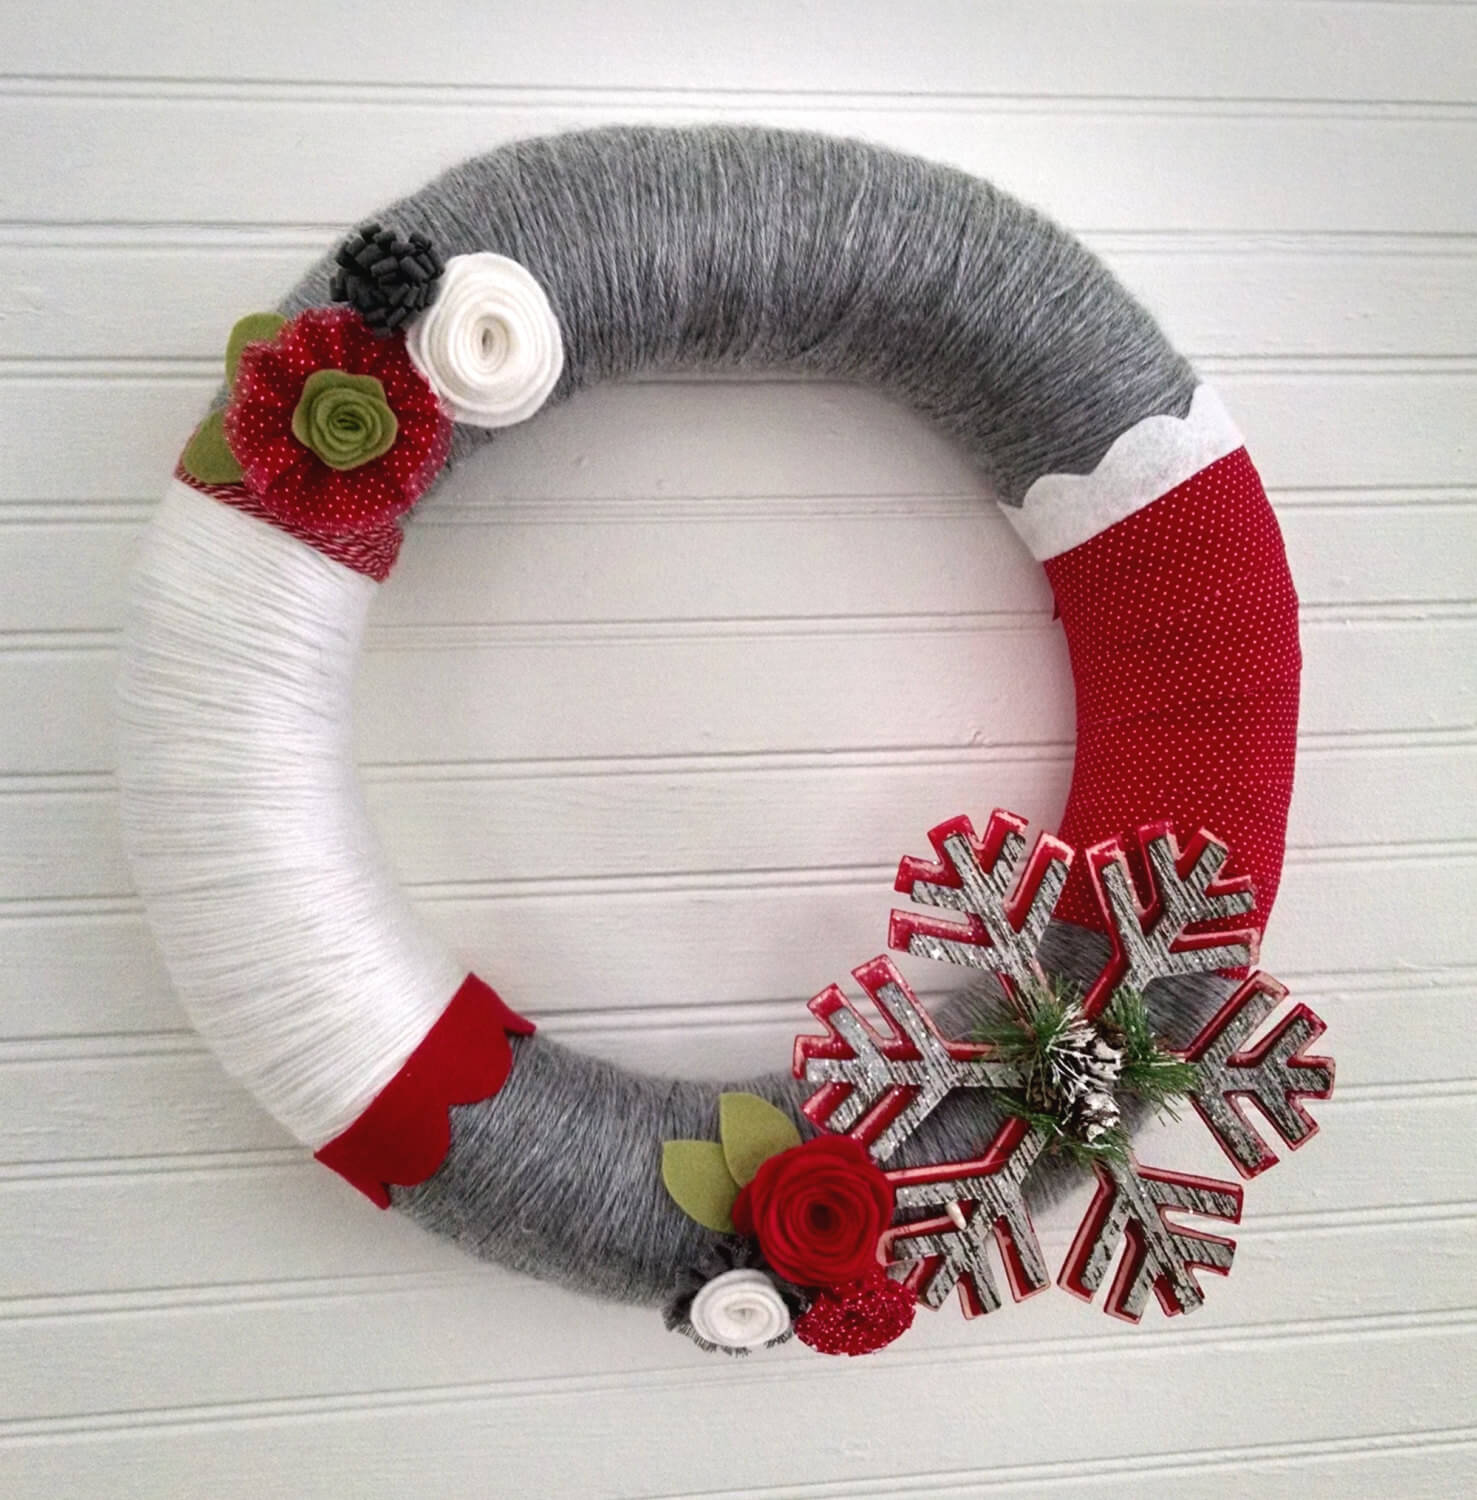 Christmas wreath in white, red and gray